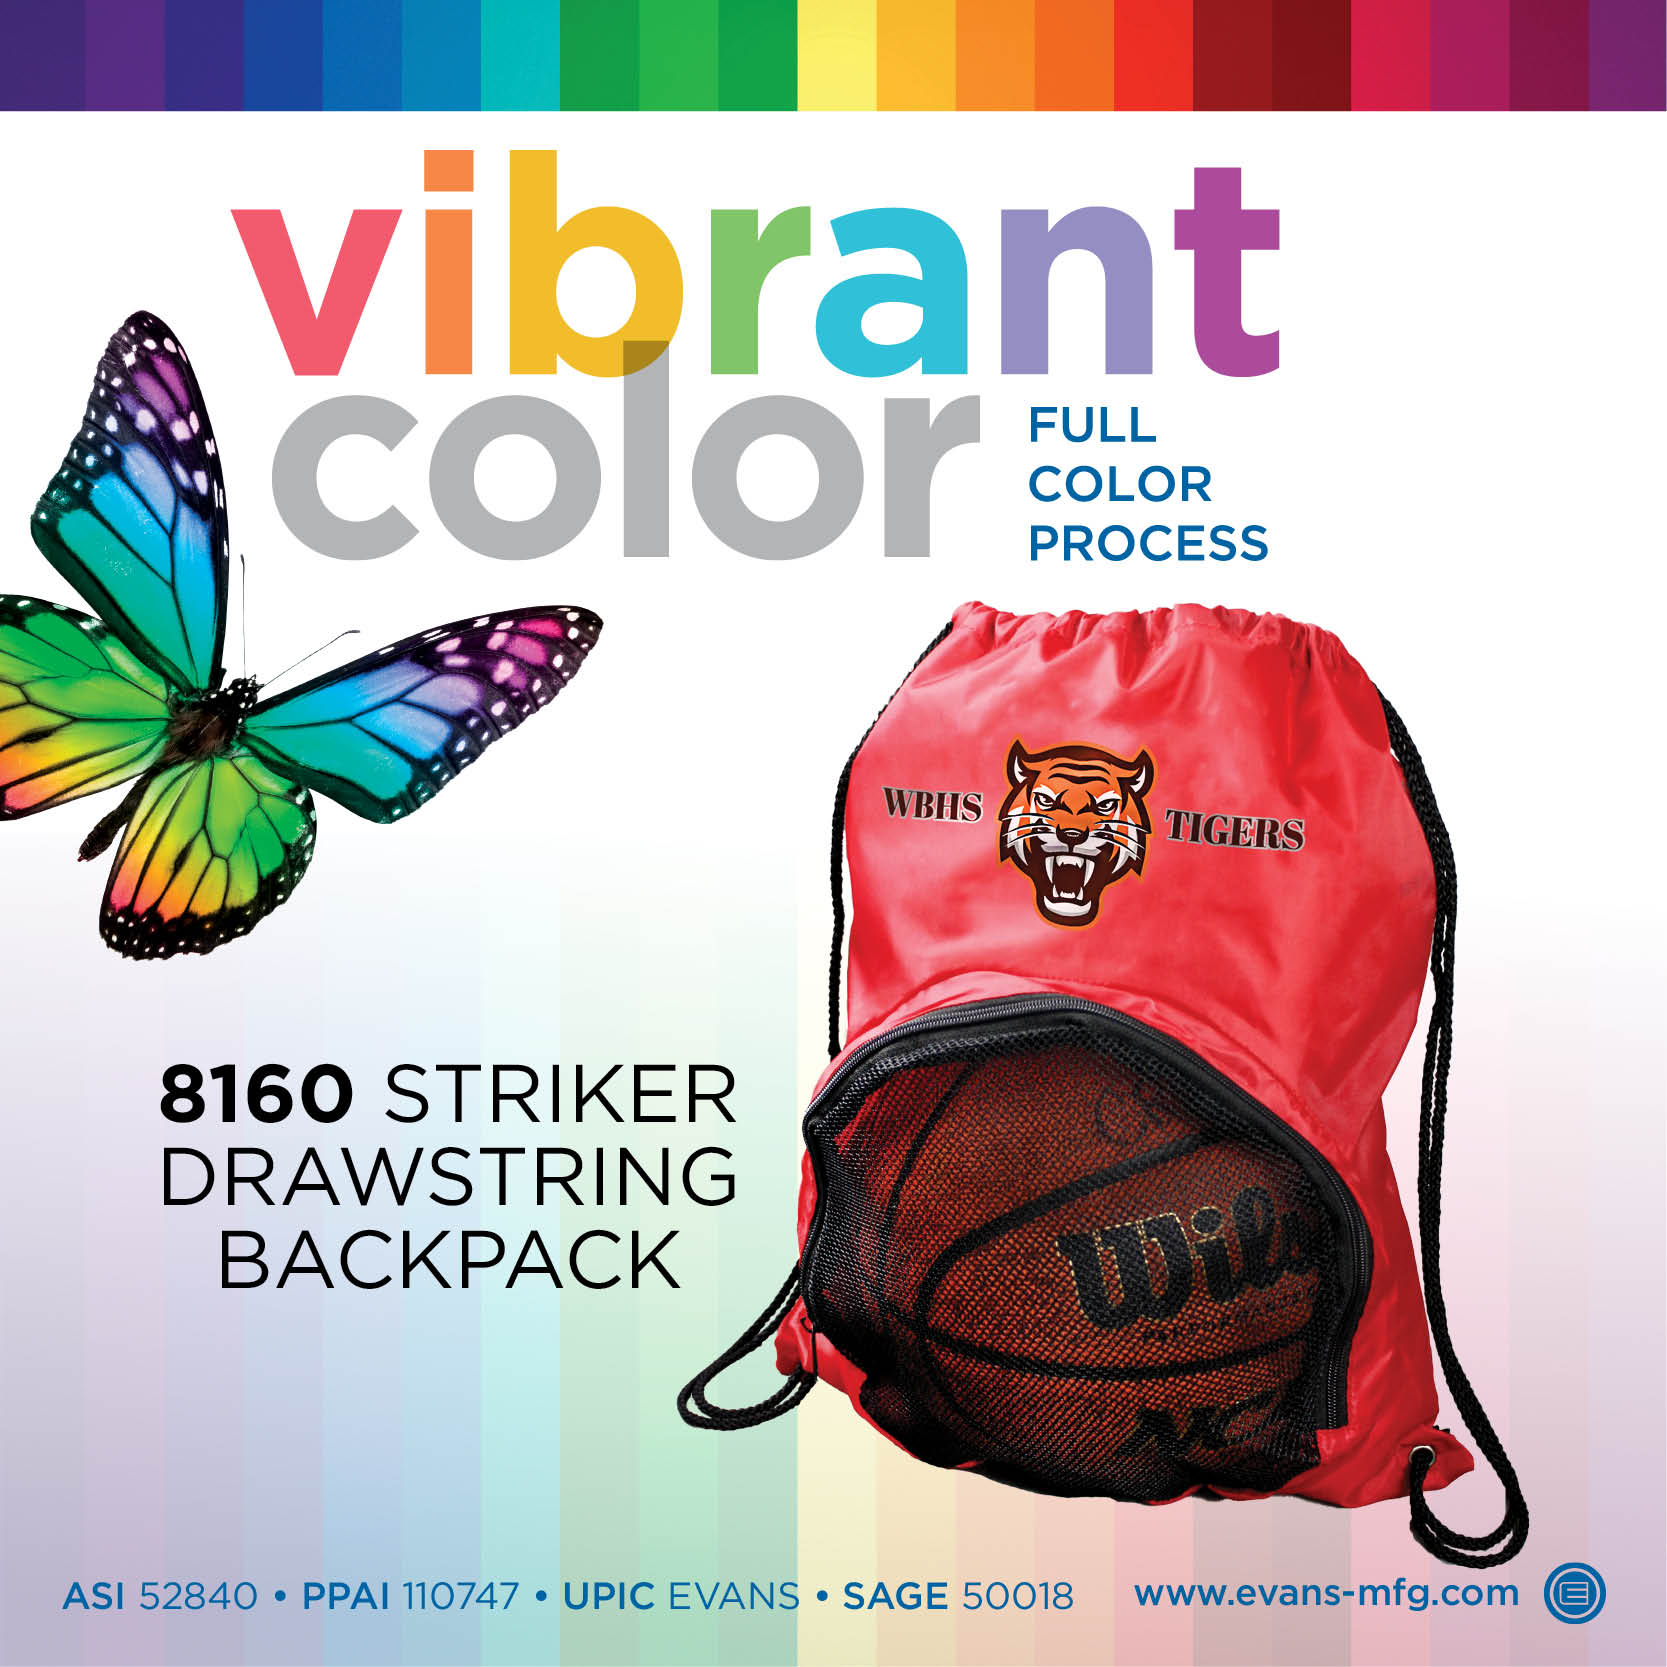 8160 Striker Drawstring Backpack VD